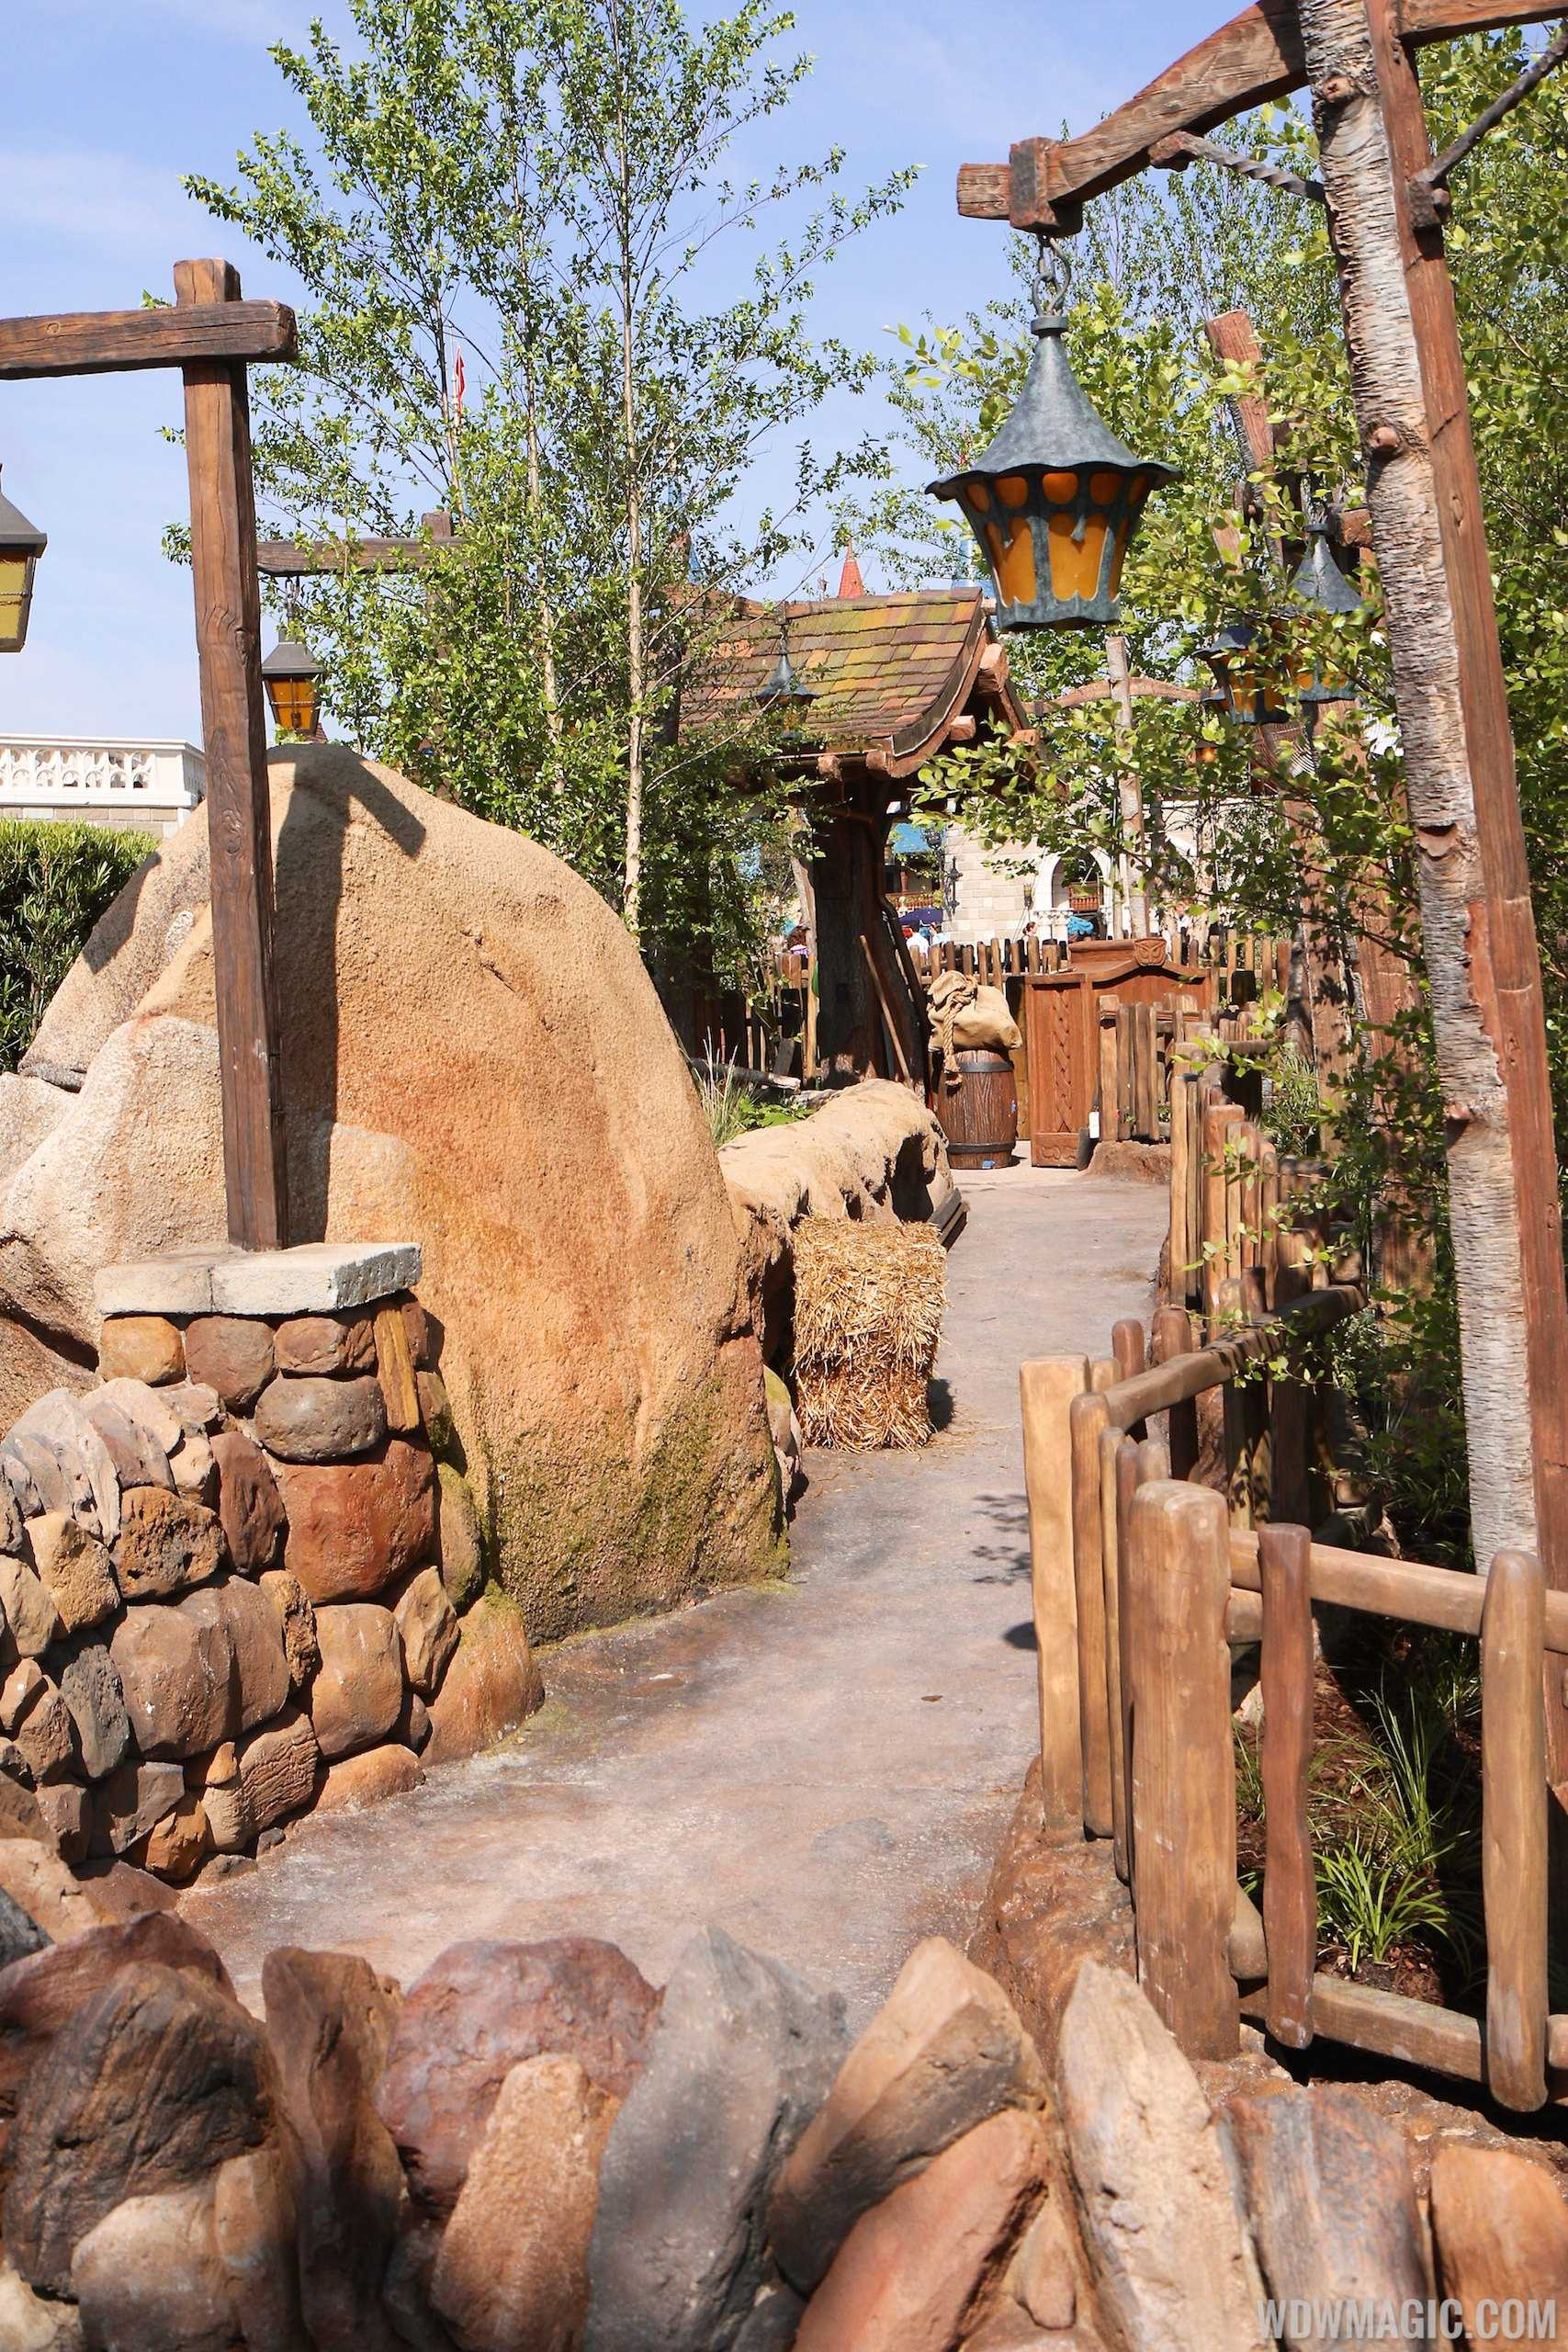 Seven Dwarfs Mine Train queue